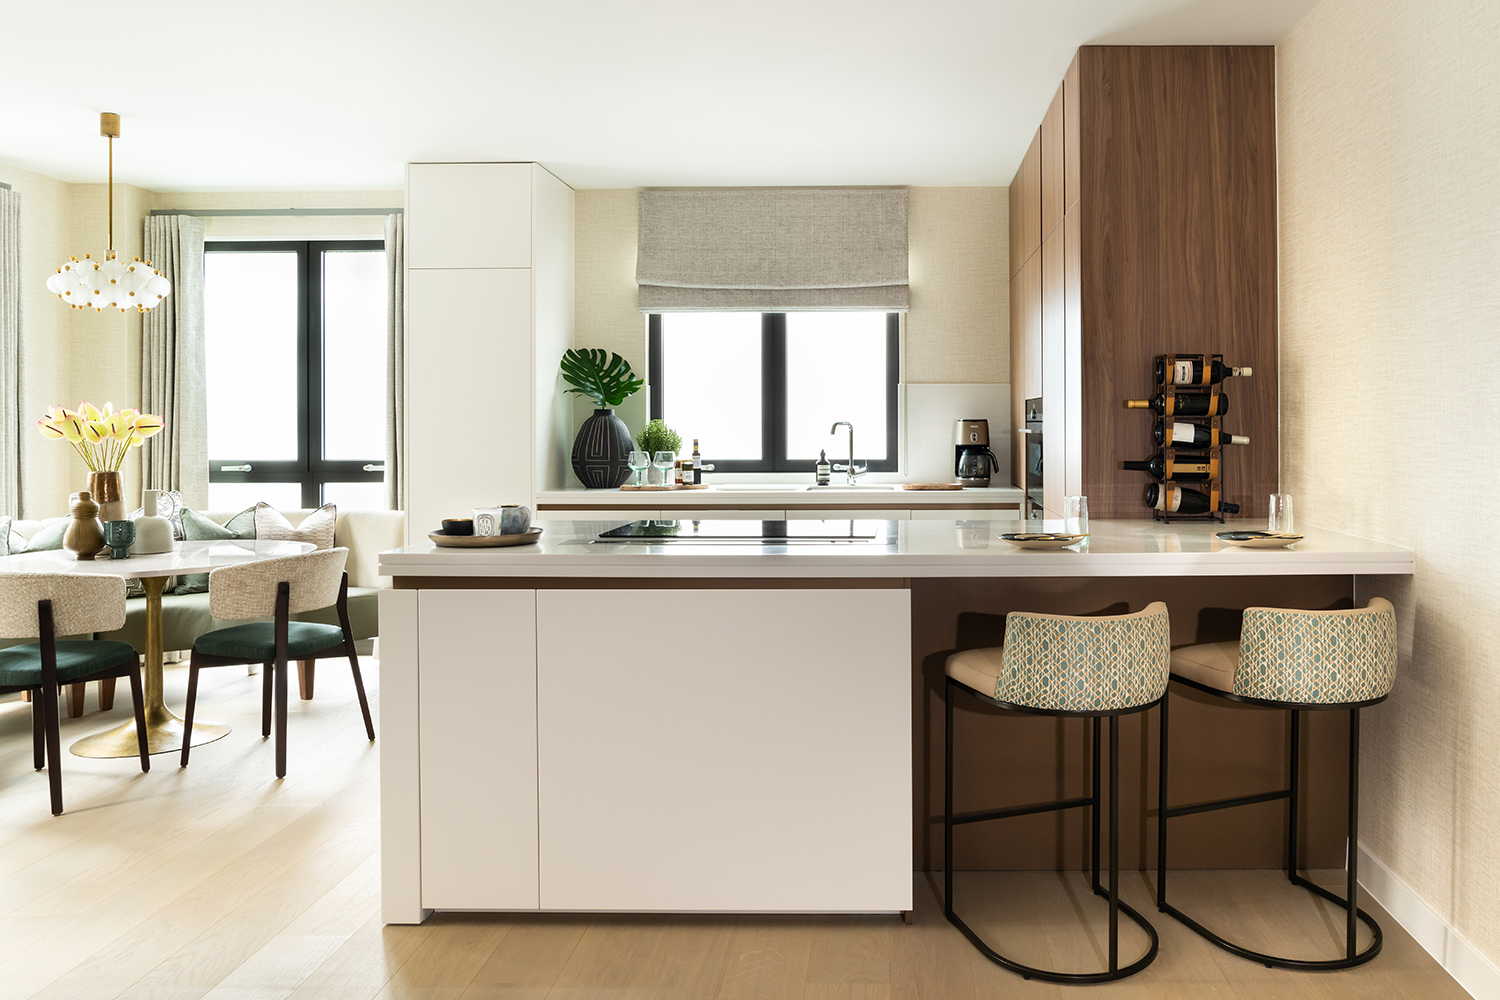 ALONDON_Lyons_Place_005_Kitchen_Dining_Area.jpg